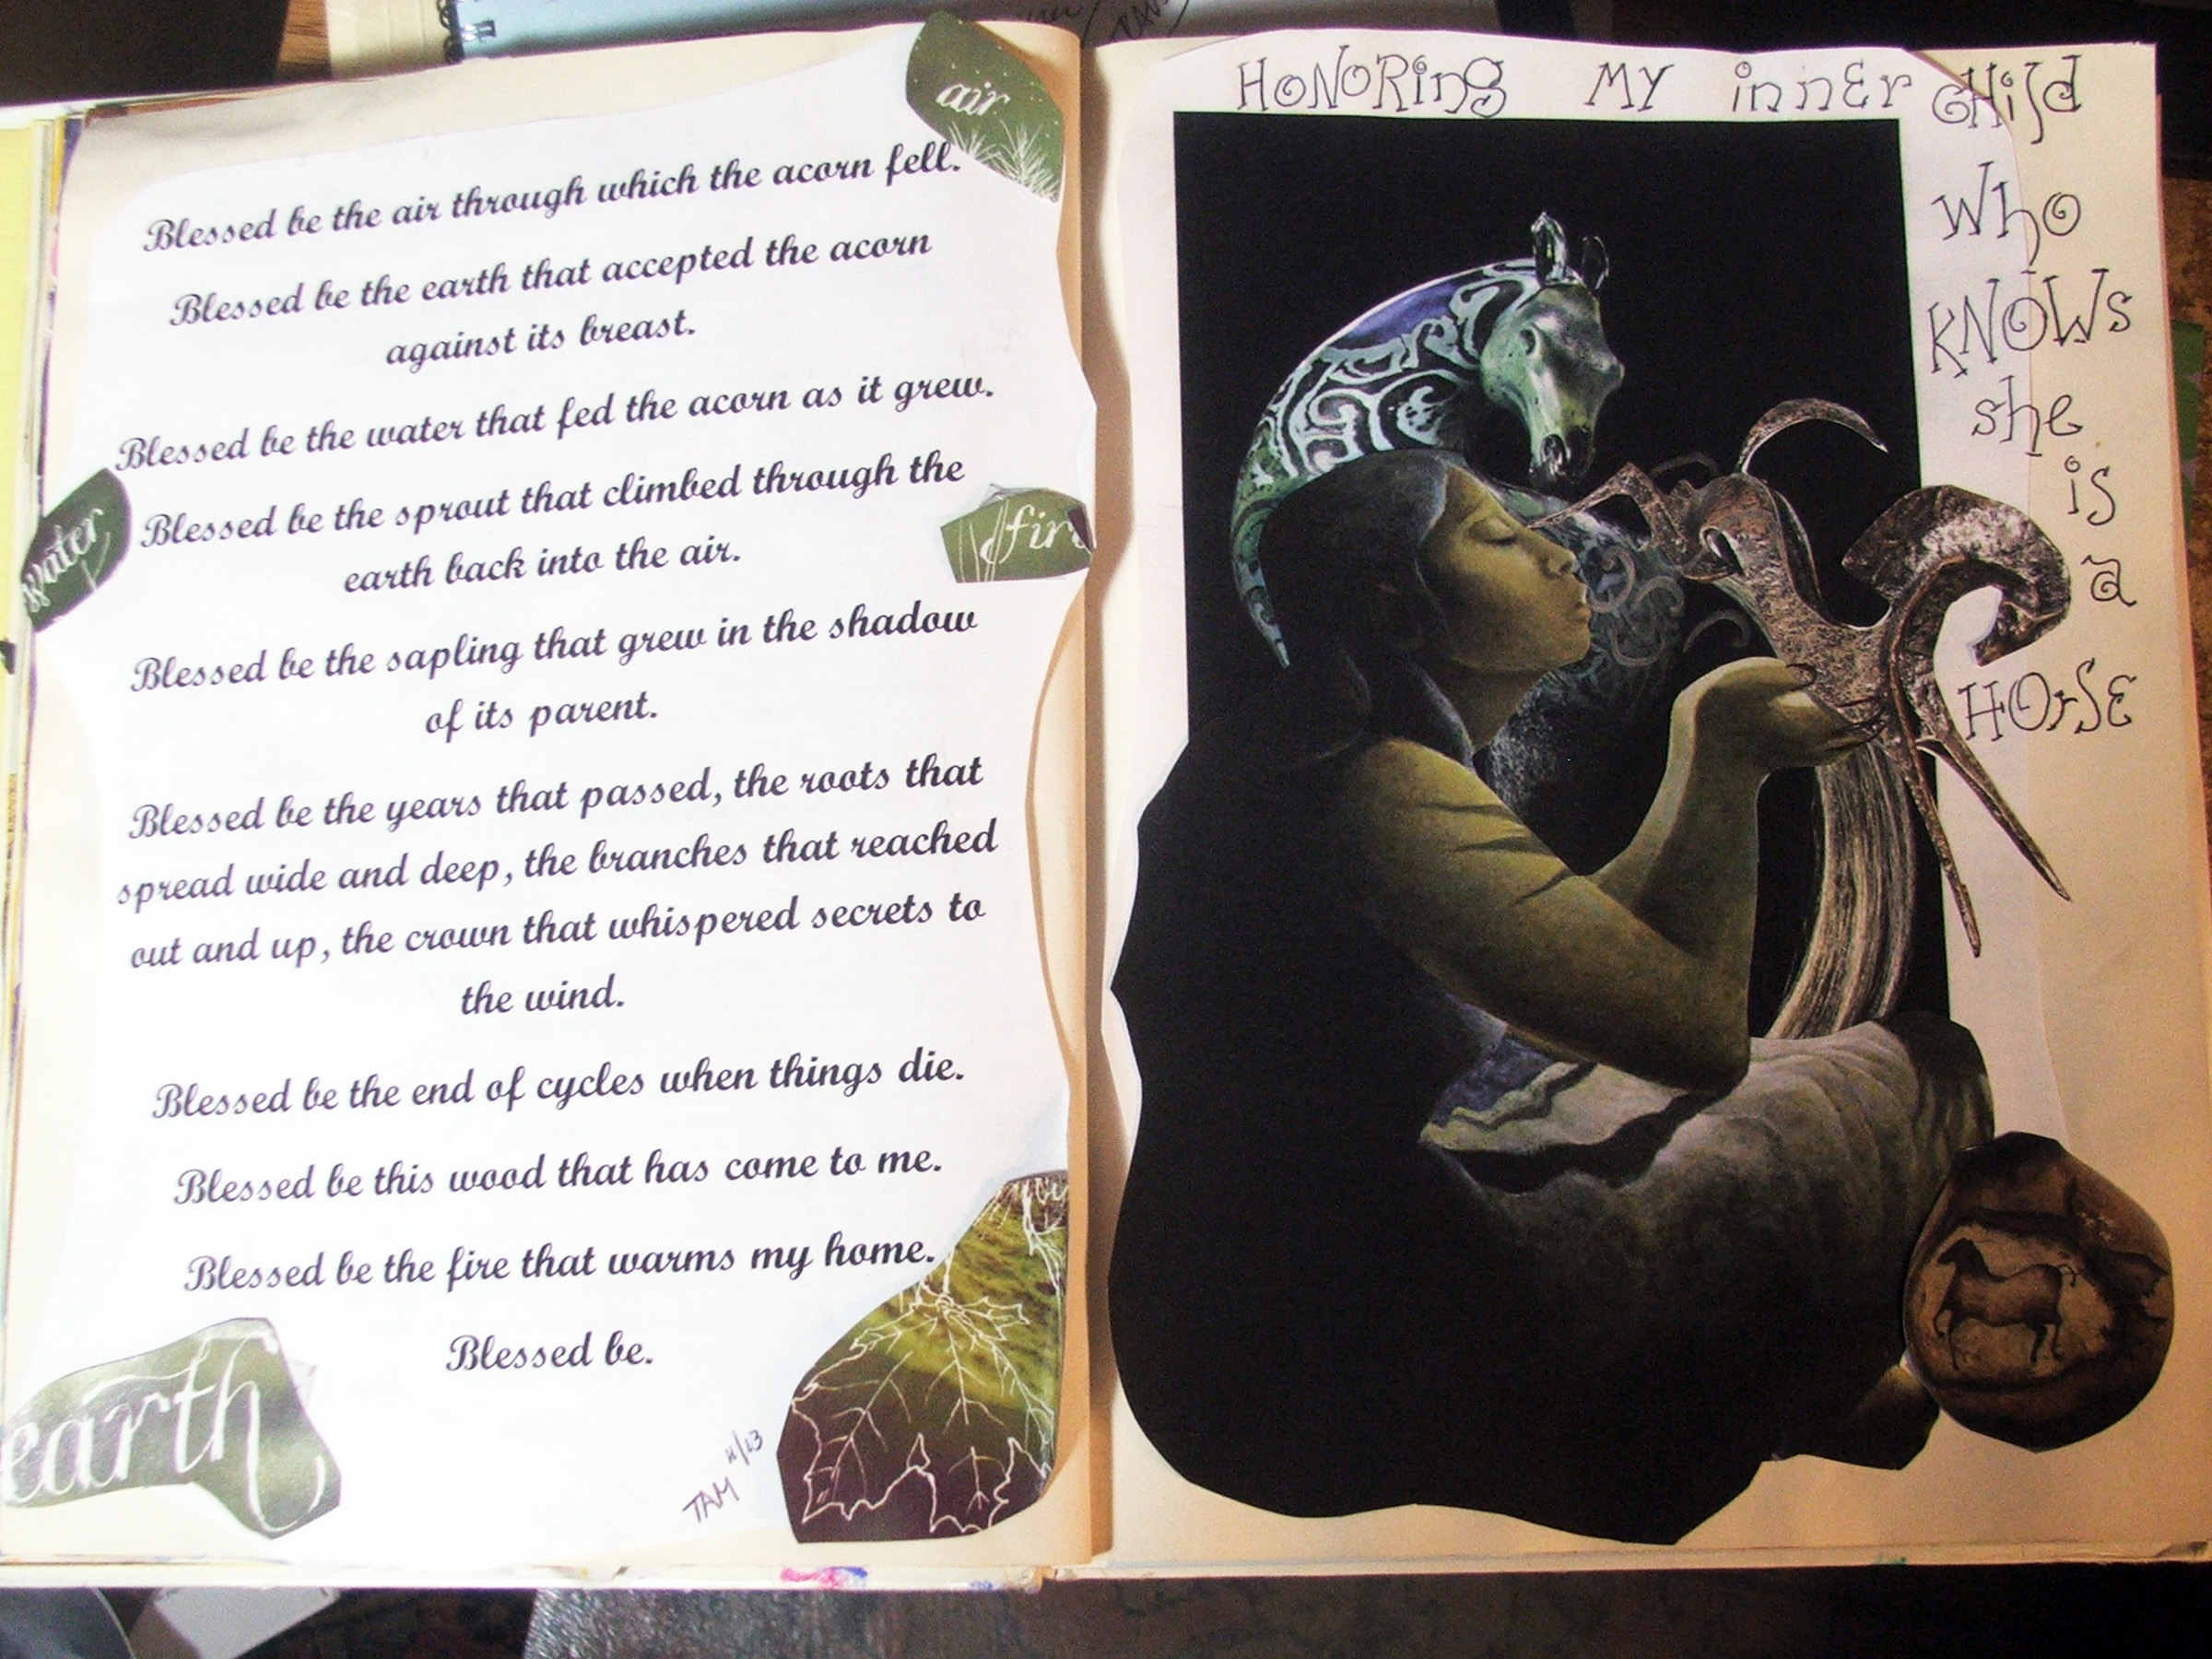 AEDM 11.13, from an on-going altered book project I started 8 years ago the first year I did Art Every Day Month